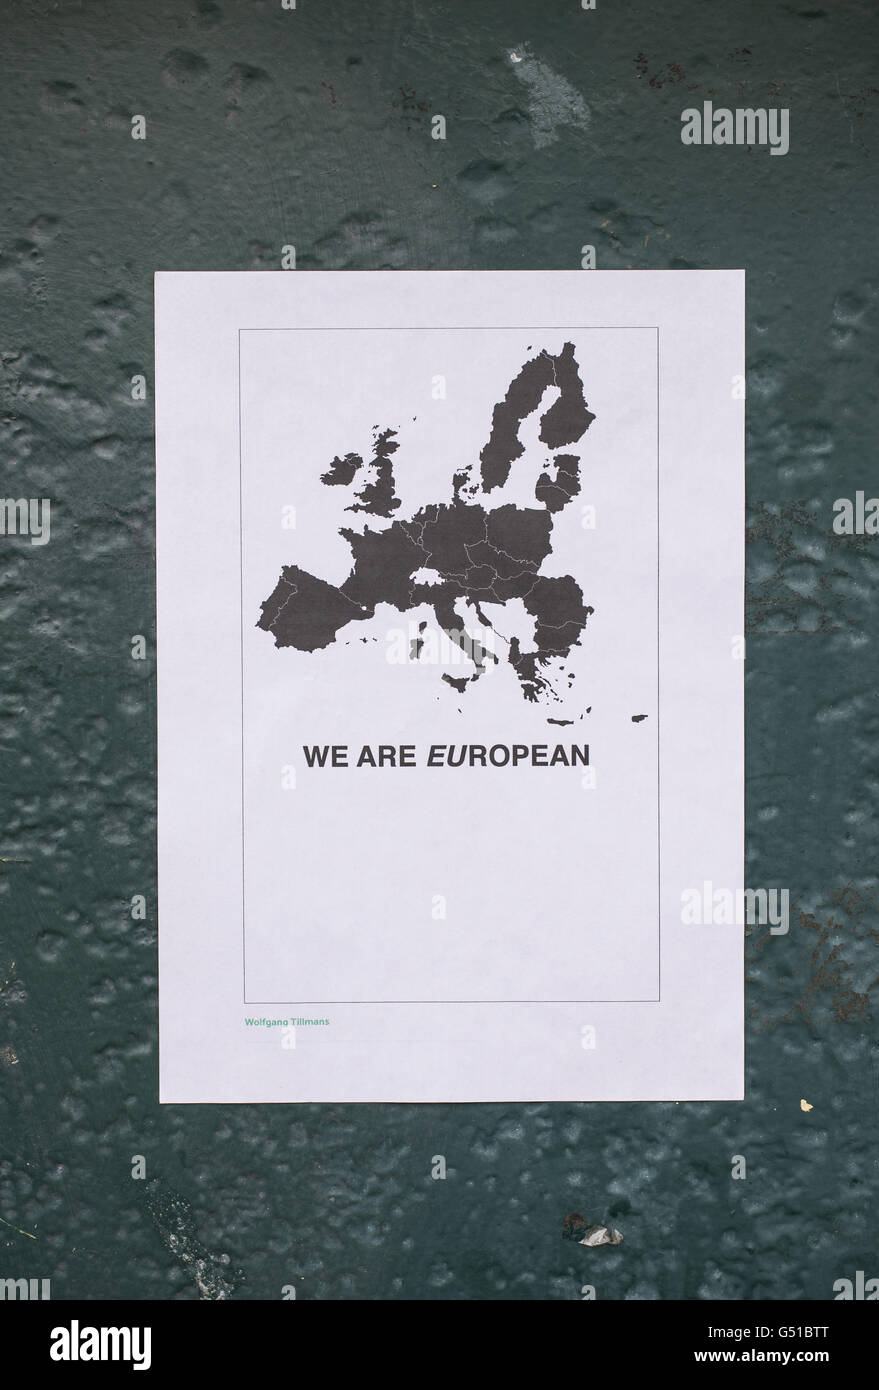 Poster in favor of a vote to remain in the European Union saying 'We are European' with an EU map above - Stock Image